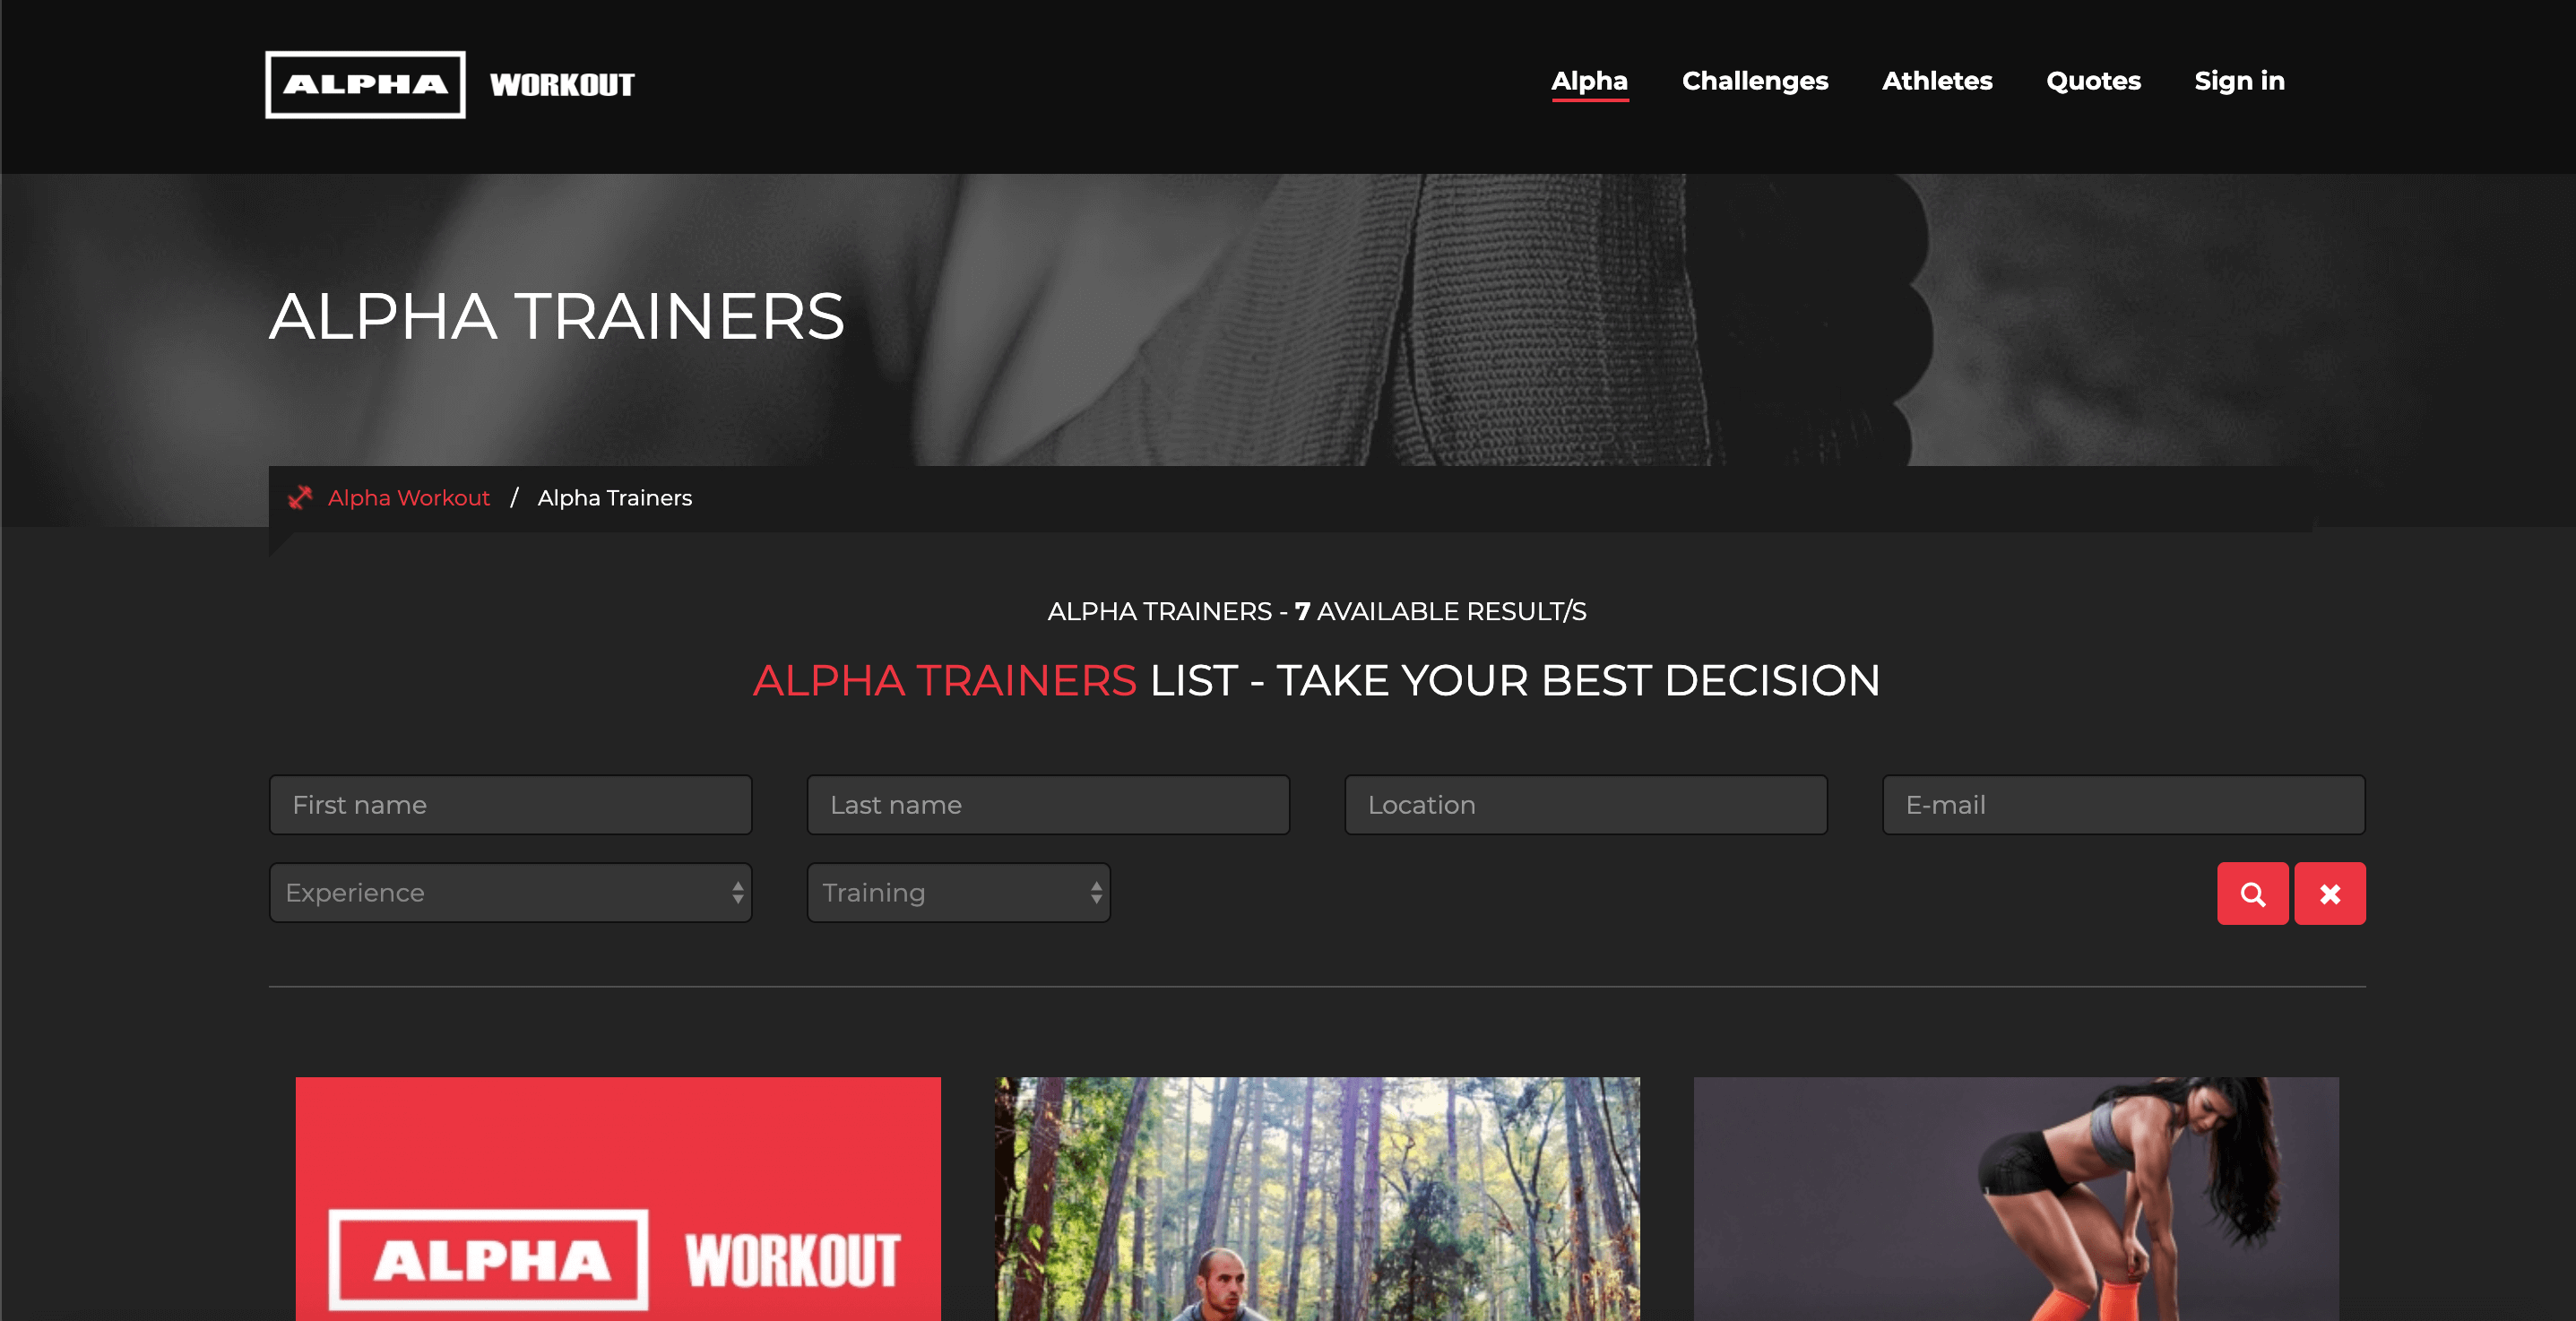 Alpha Workout